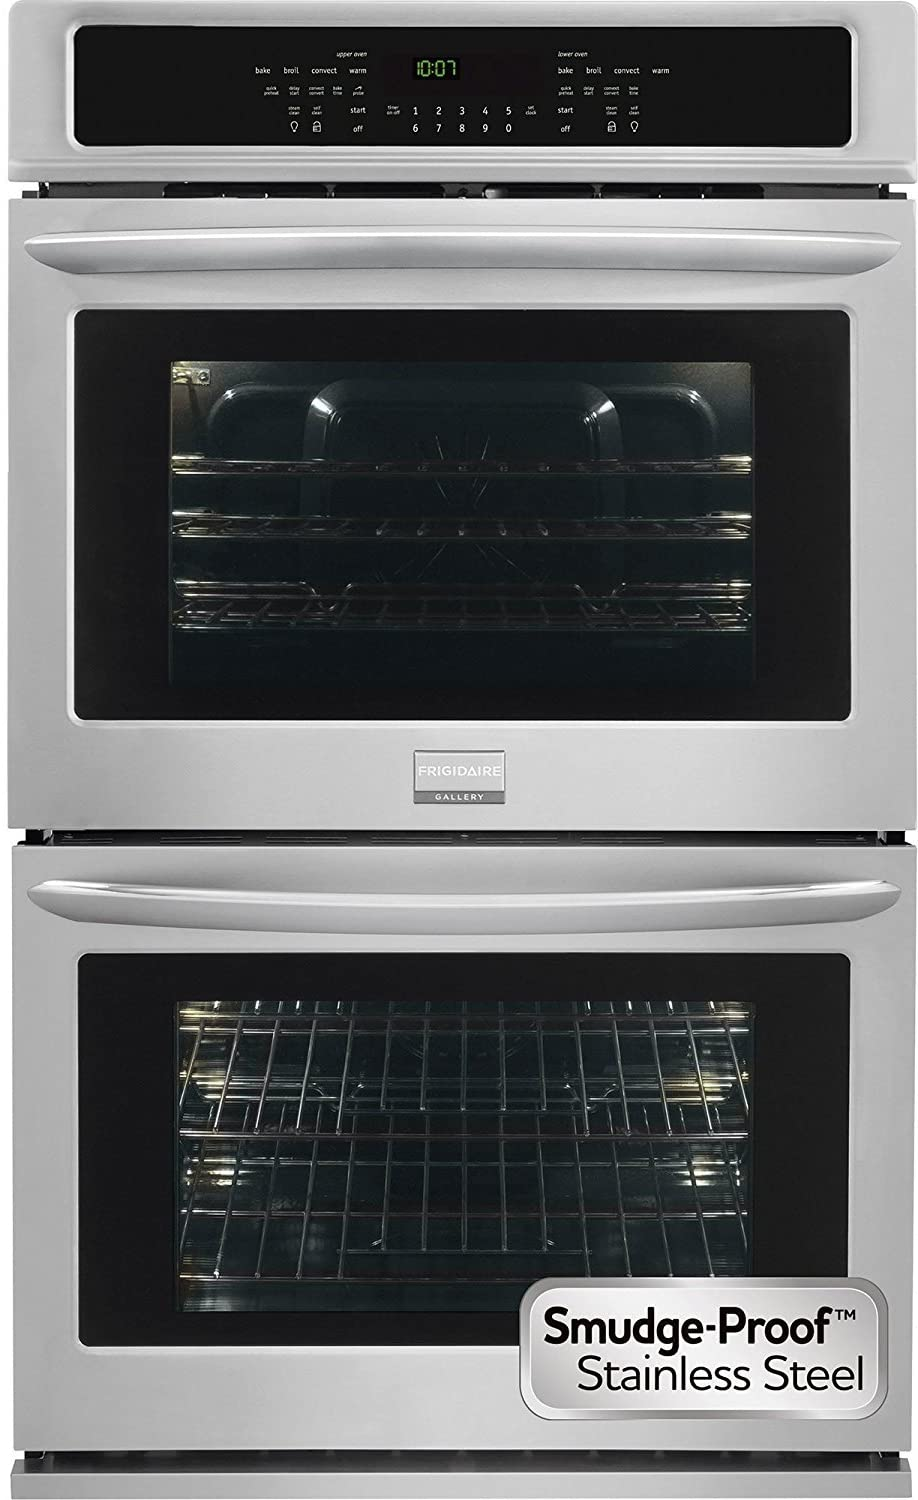 Frigidaire FGET3065PF Gallery Series 30 Inch Electric Double Wall Oven with Convection Powerful Broil, Quick Preheat, One-Touch Options in Stainless Steel